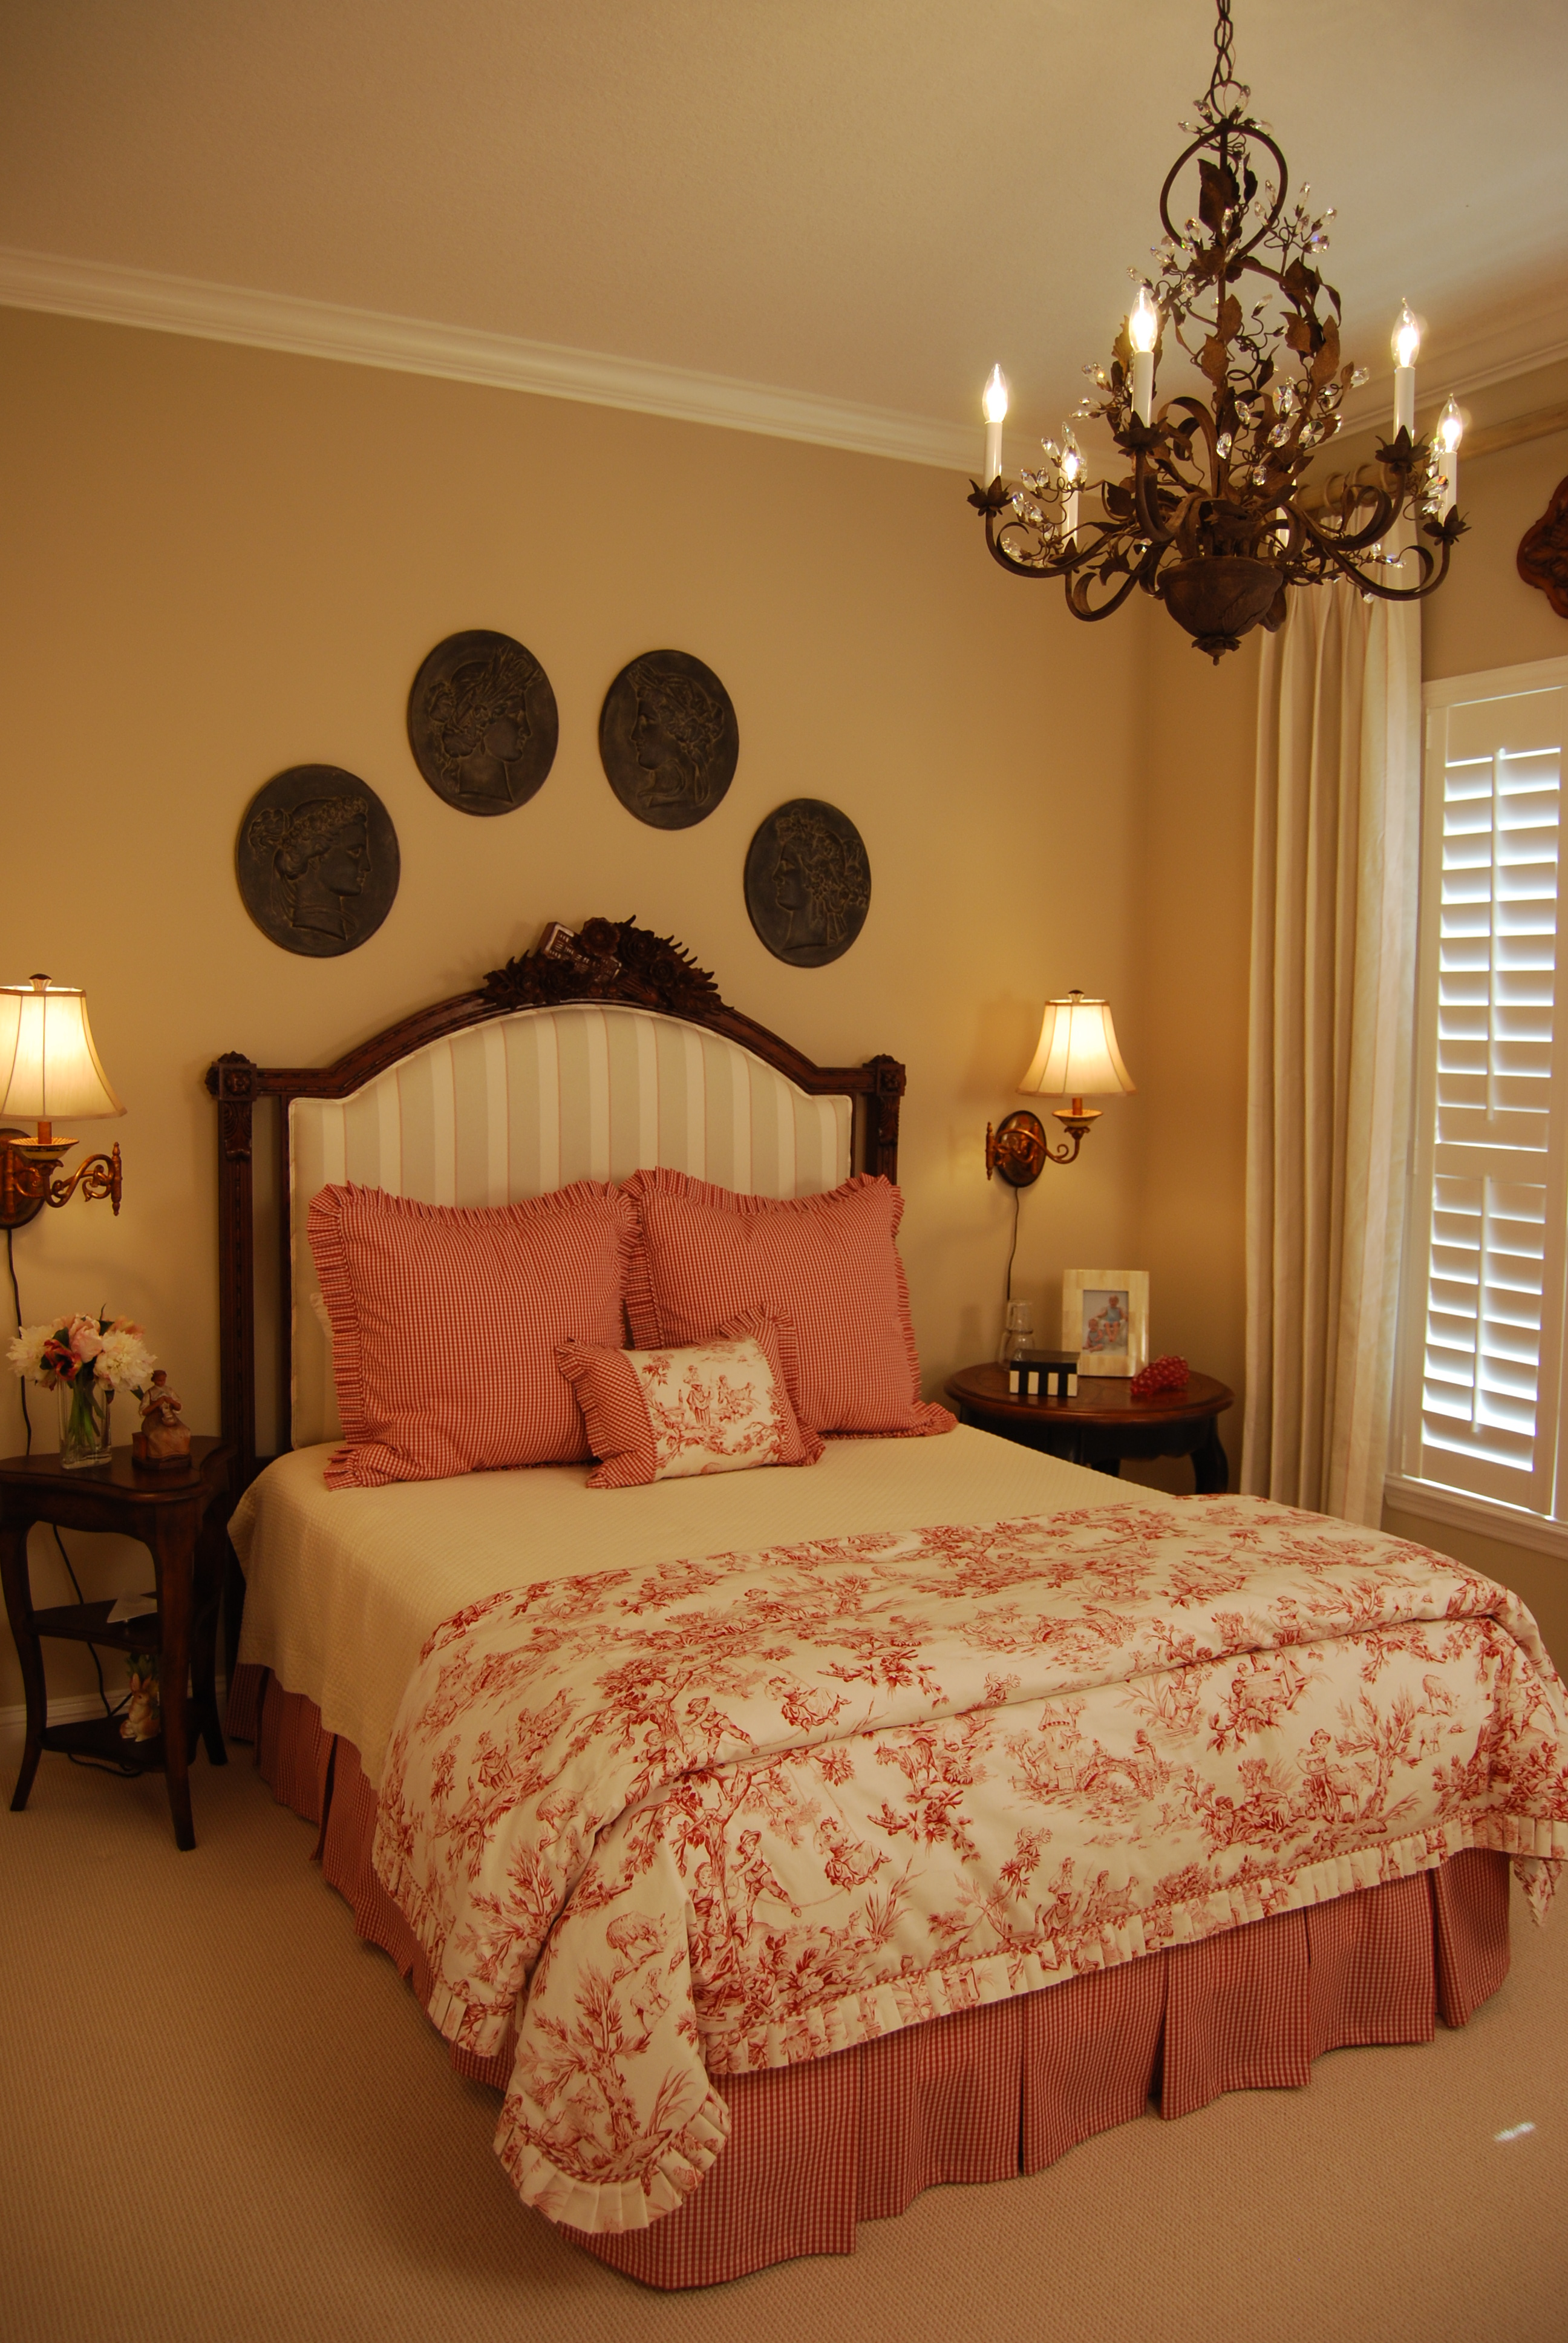 Toile Guestroom Full View.JPG